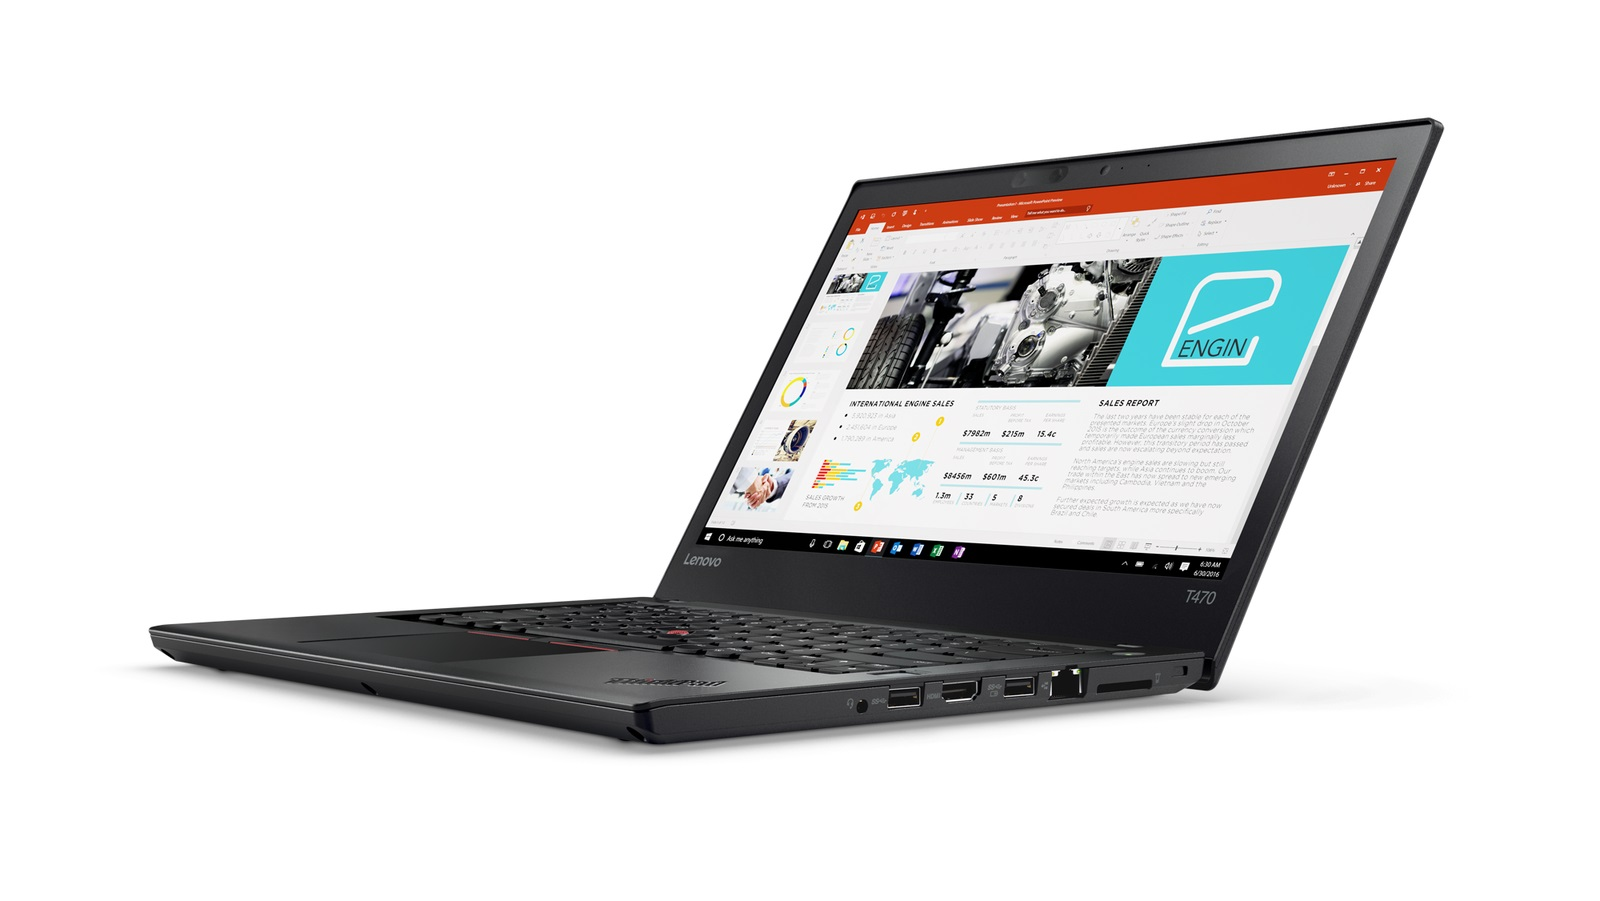 "Lenovo ThinkPad T470 i5-7200U/8GB/256GB SSD/HD Graphics 620/14""FHD IPS/4G/Win10PRO/Black"